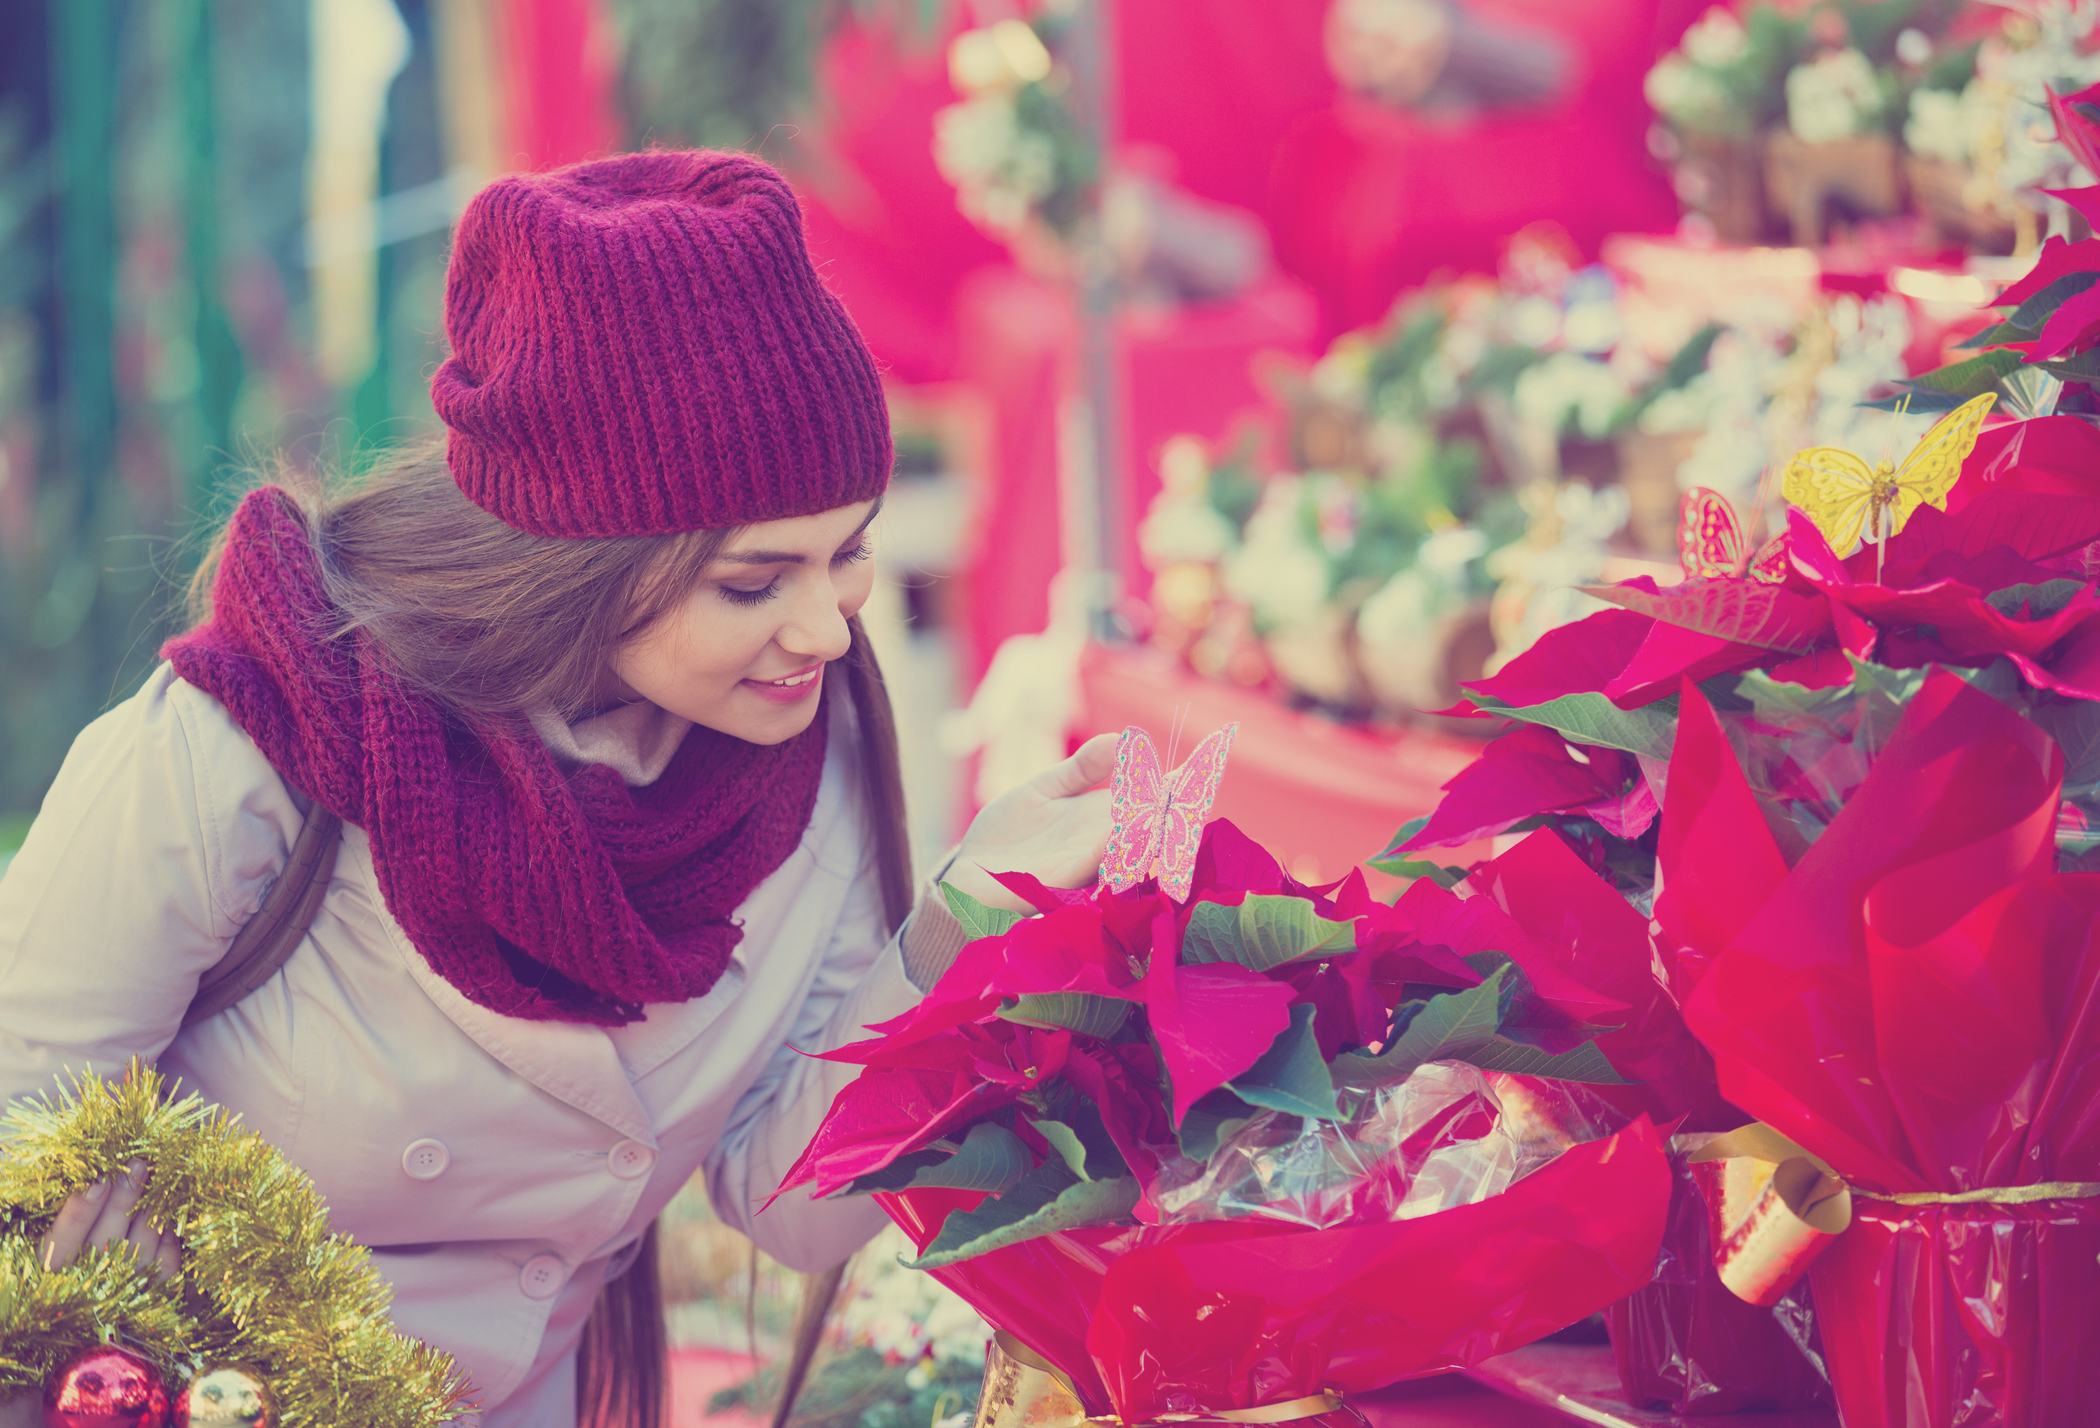 Generic photo of woman buying floral compositions at Christmas market (Thinkstock/PA)